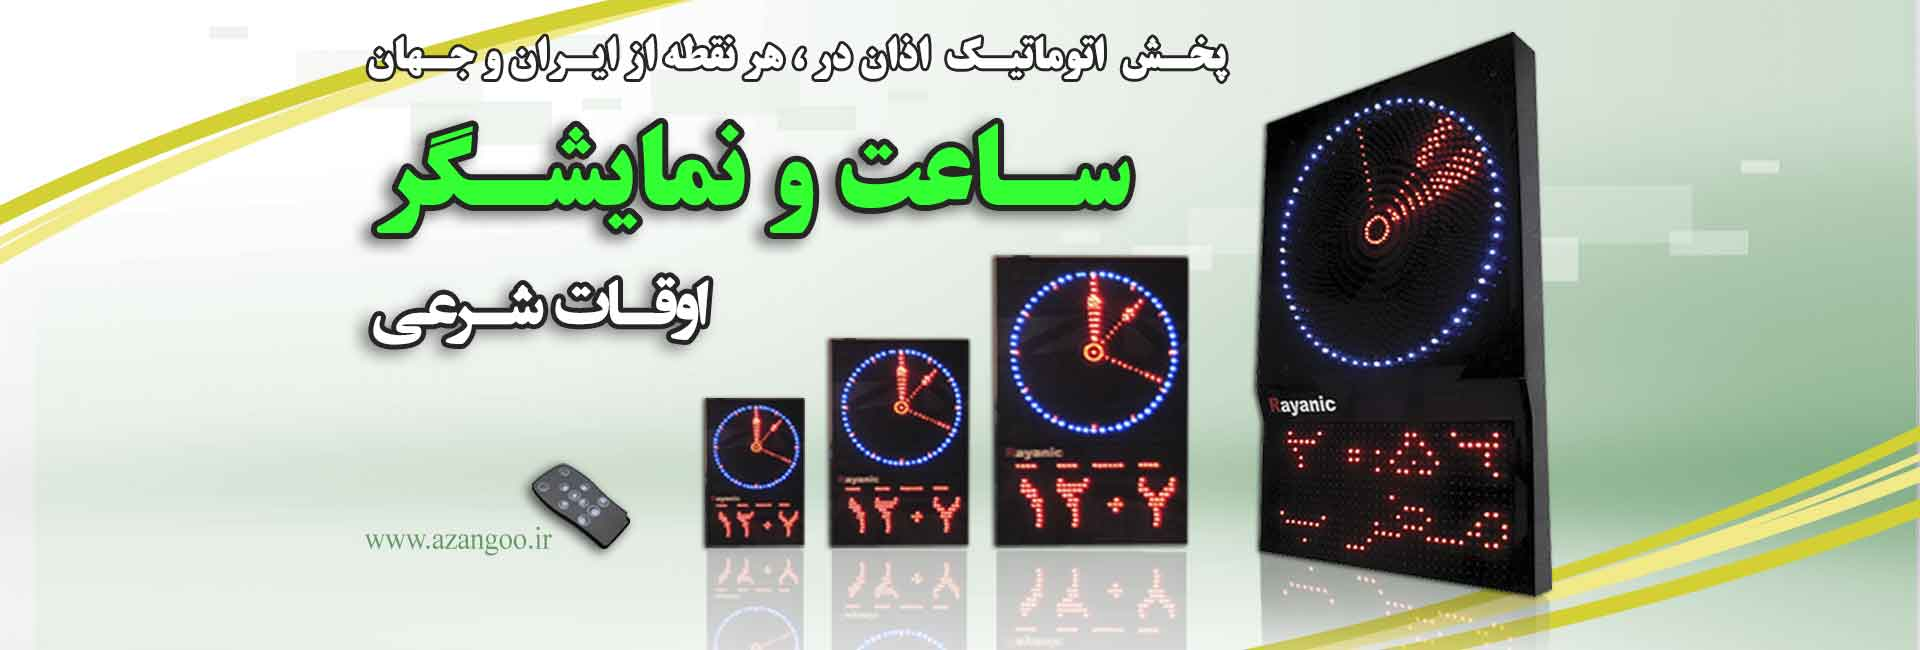 LED-clock-azangoo.ir